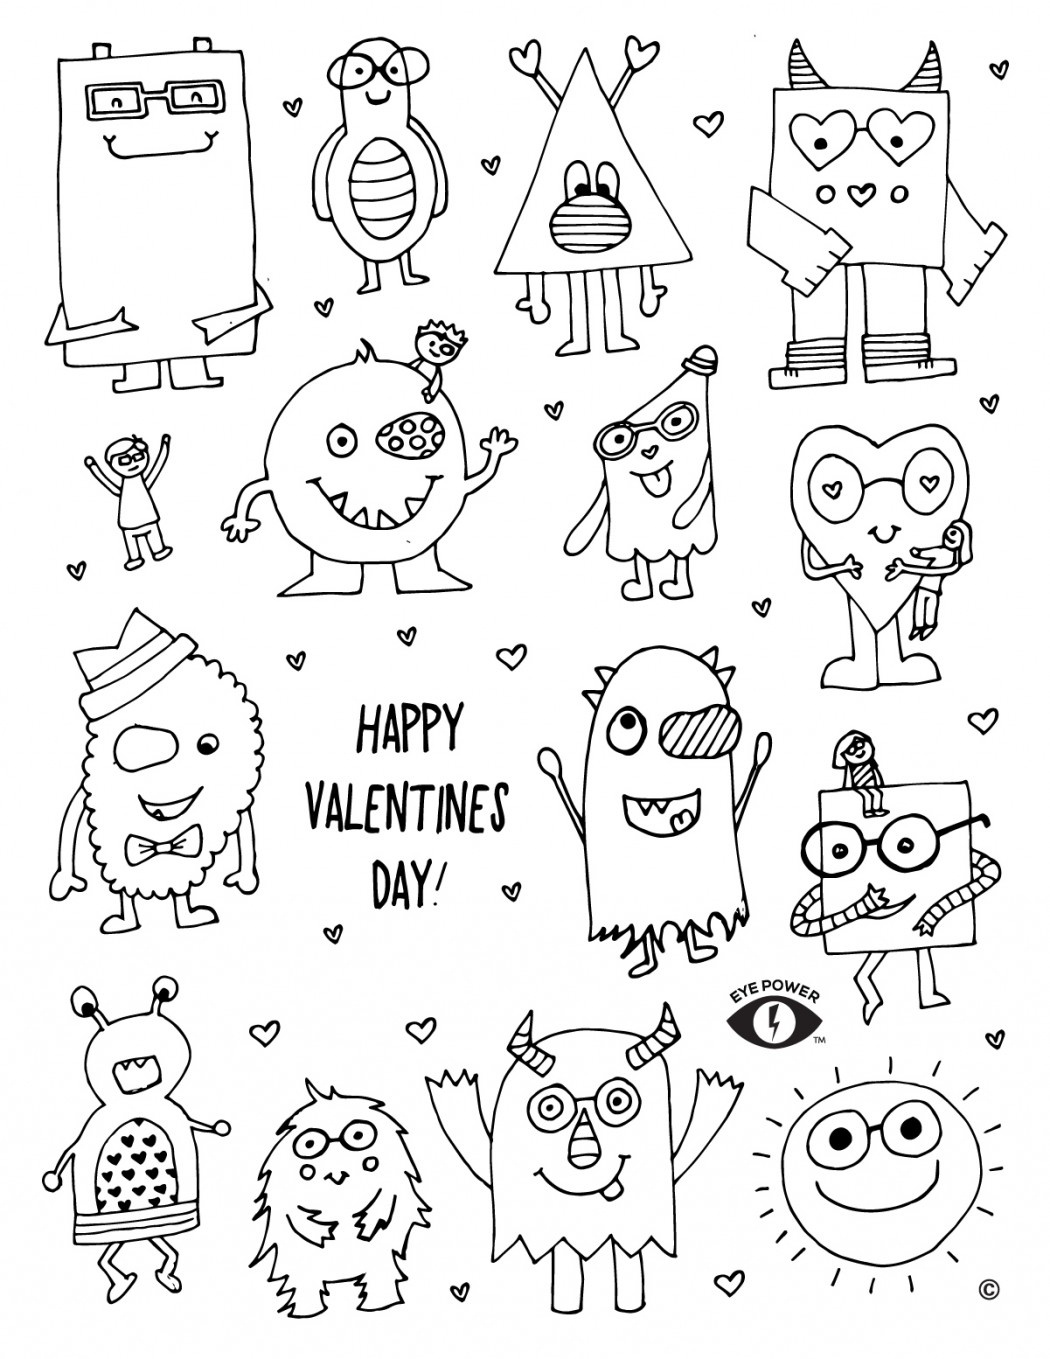 Free Valentines Coloring Page Printable - Eye Power Kids Wear - Free Printable Valentine Coloring Pages